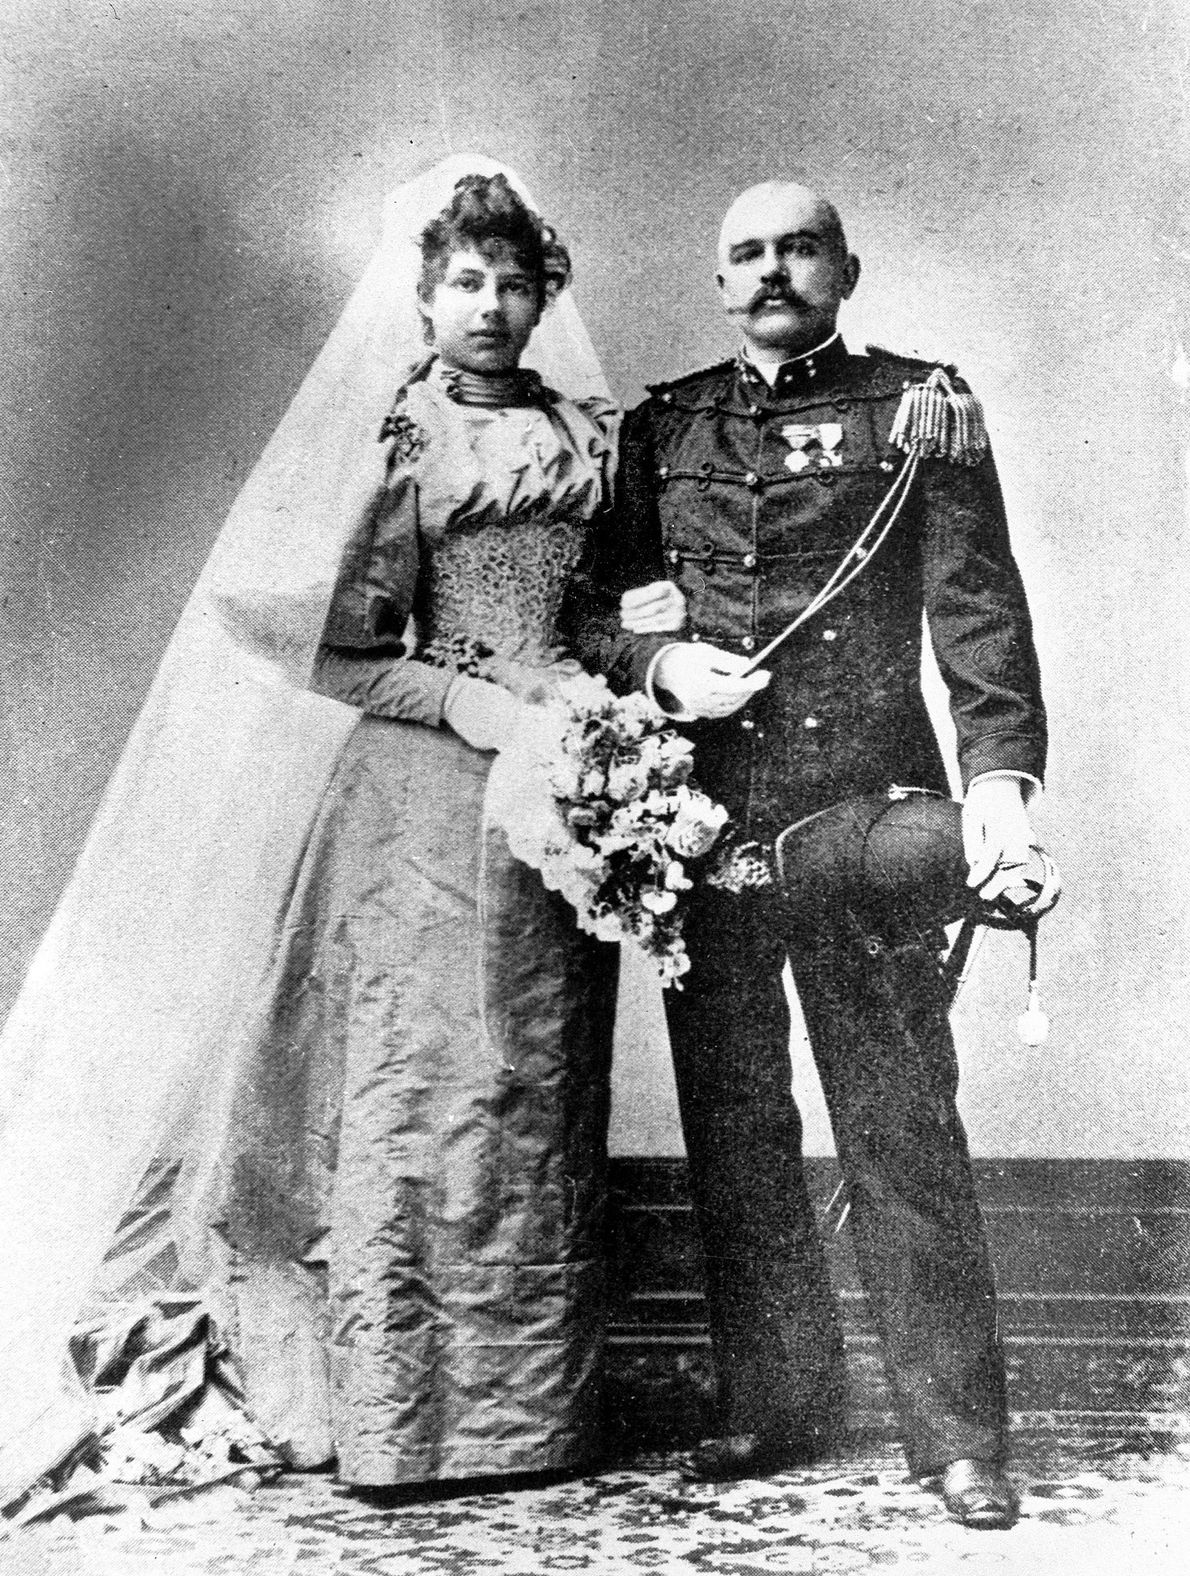 In 1895, the 18-year-old future Mata Hari married Capt. Rudolf MacLeod, an older man who, unbeknownst ...